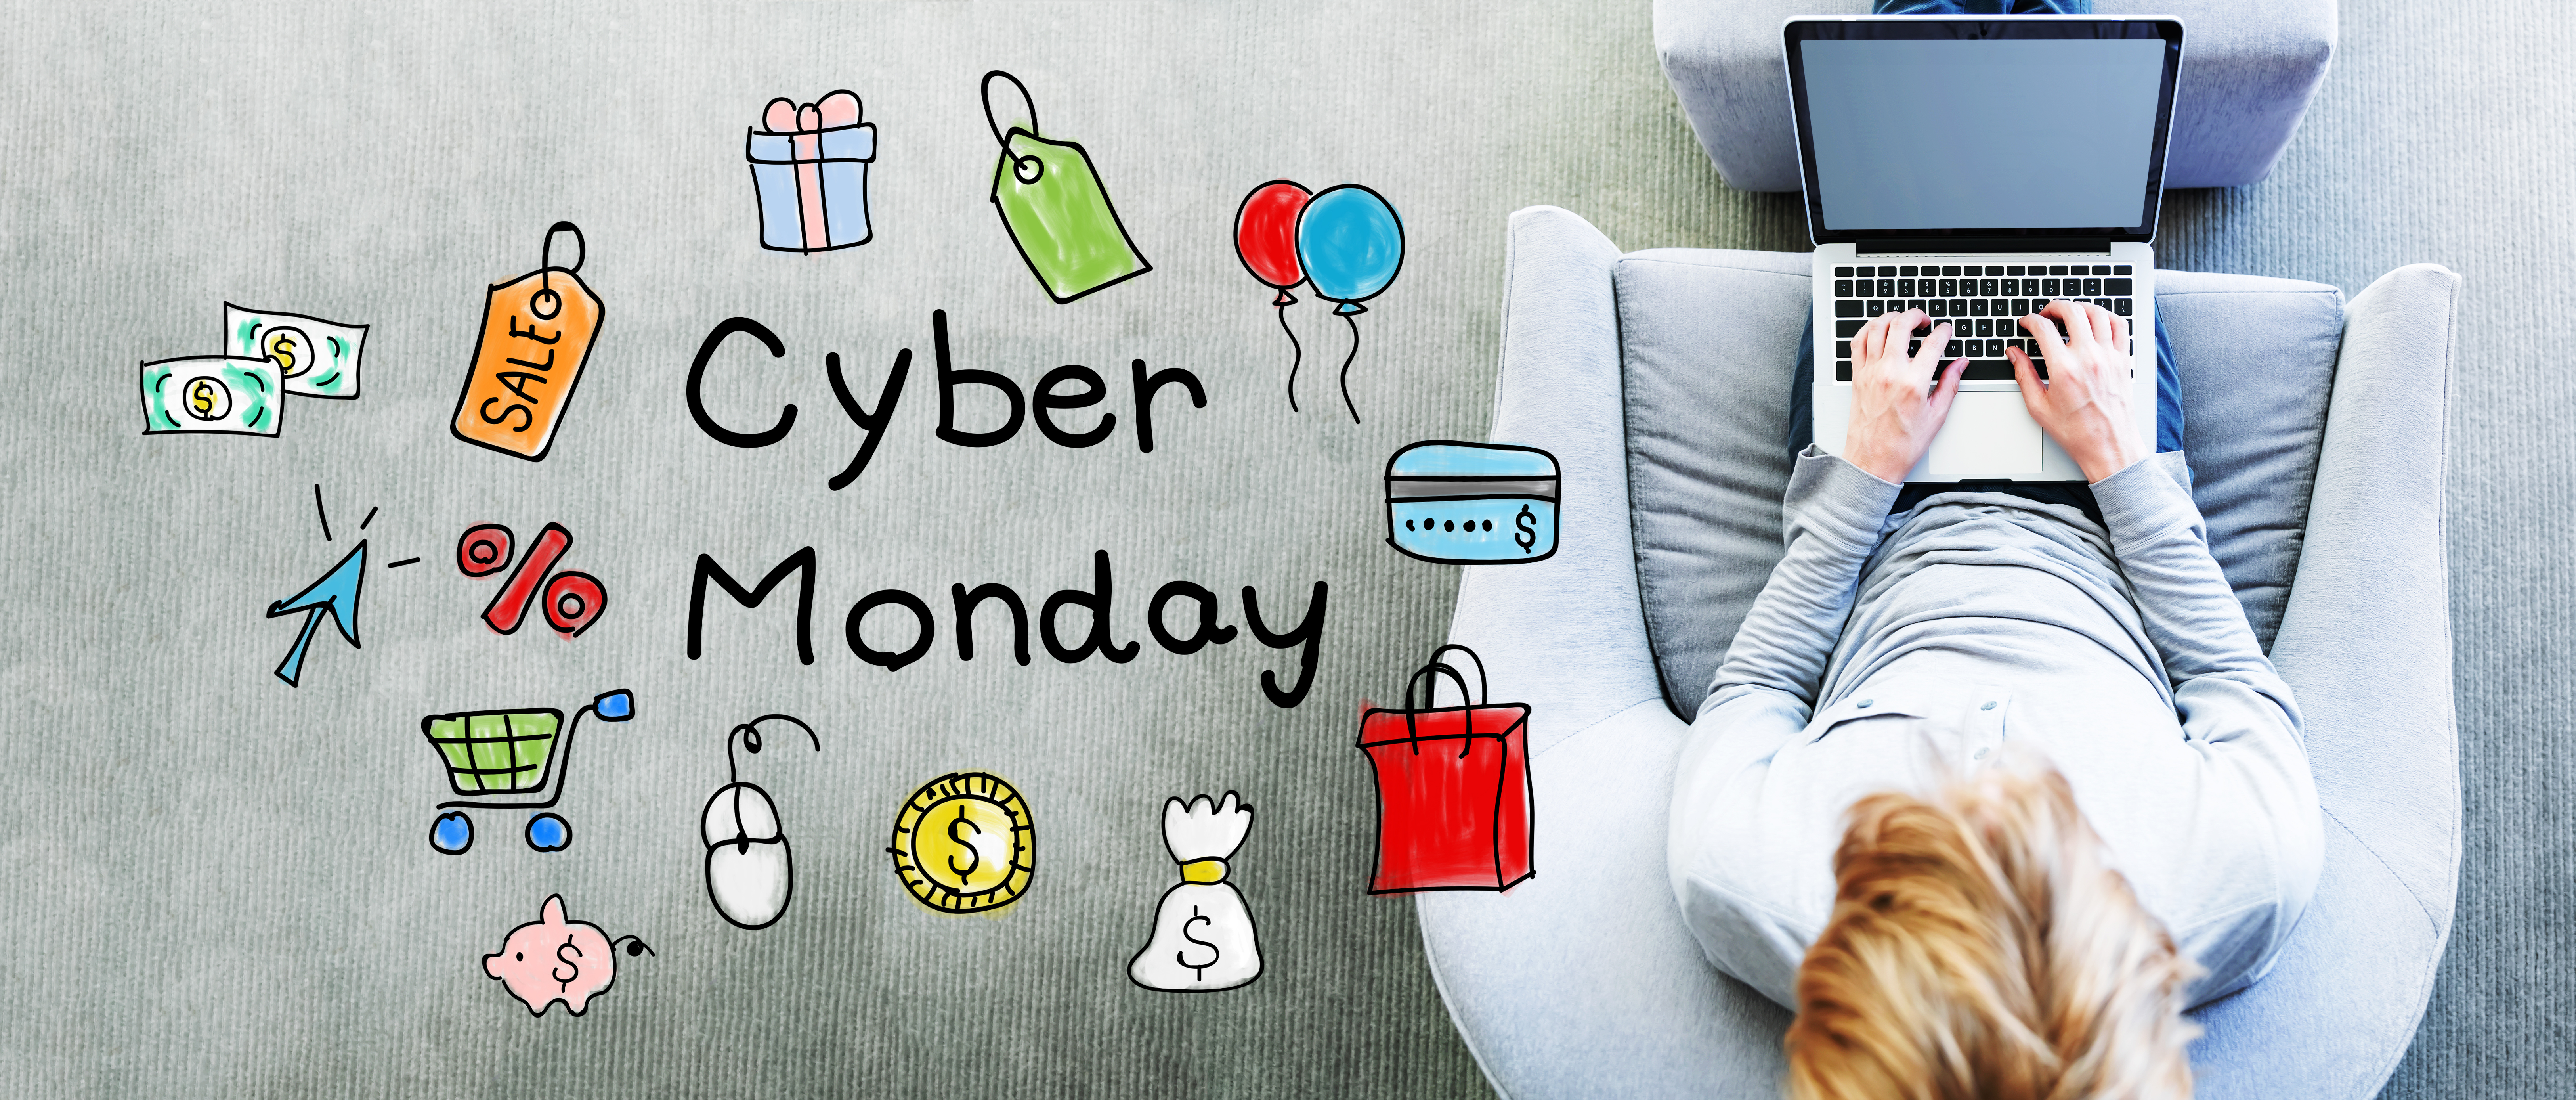 Cyber Shopping December Deals - They Don't All End On Monday